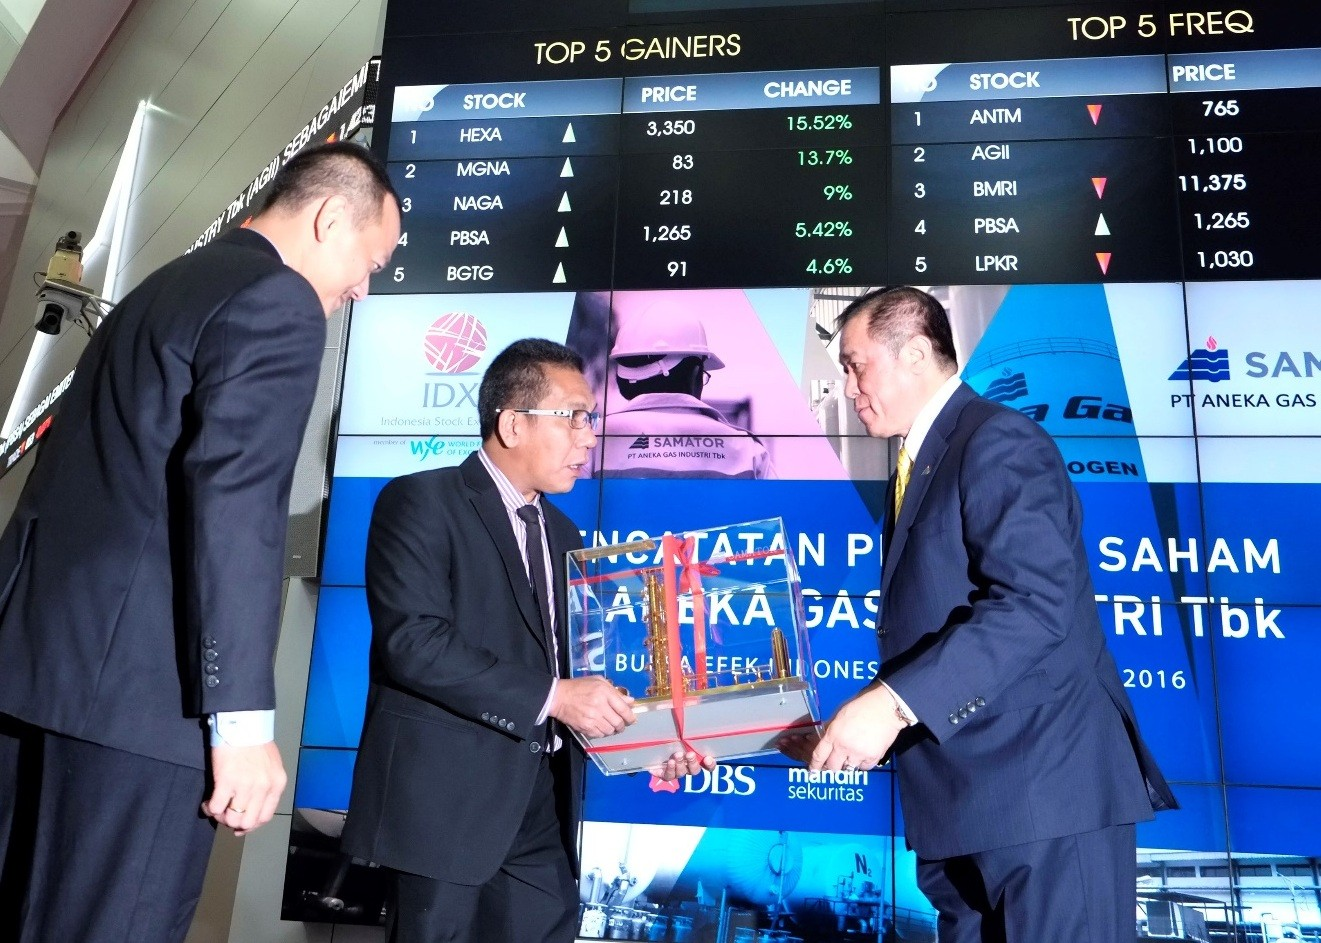 Aneka Gas to issue Rp 400b in bonds and Islamic bonds